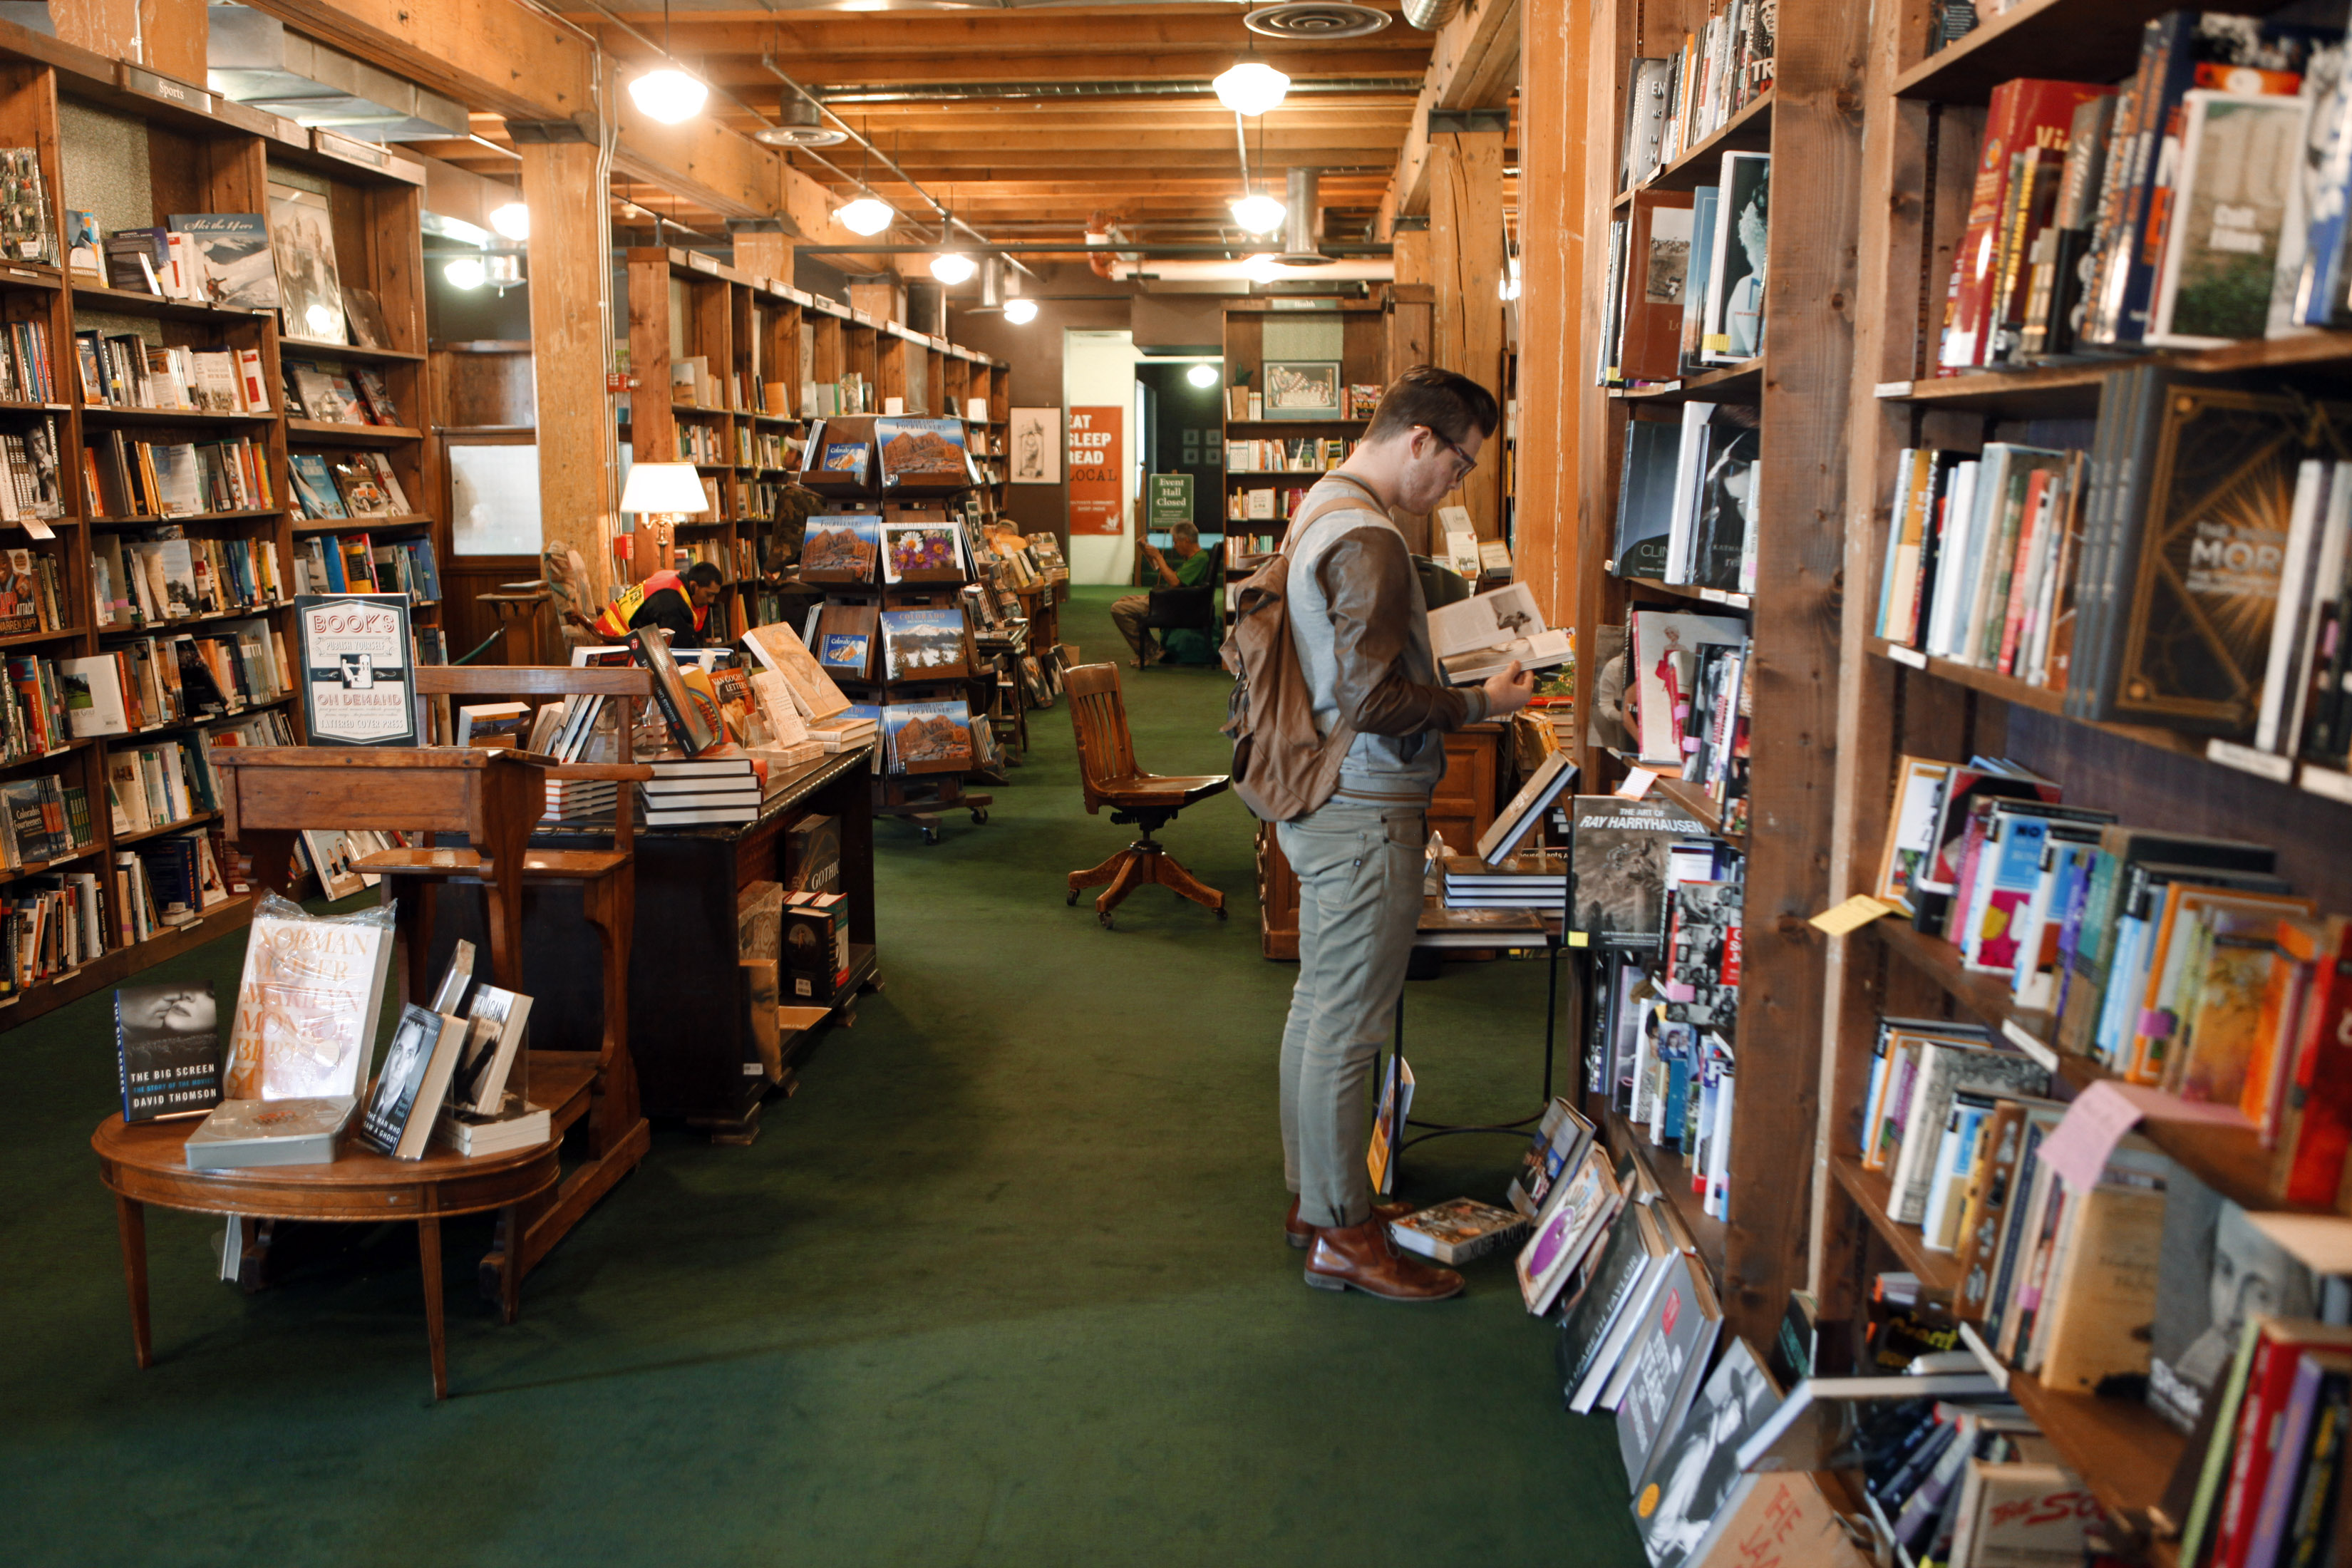 Photo: Tattered Cover, downtown Denver, book stacks and customers